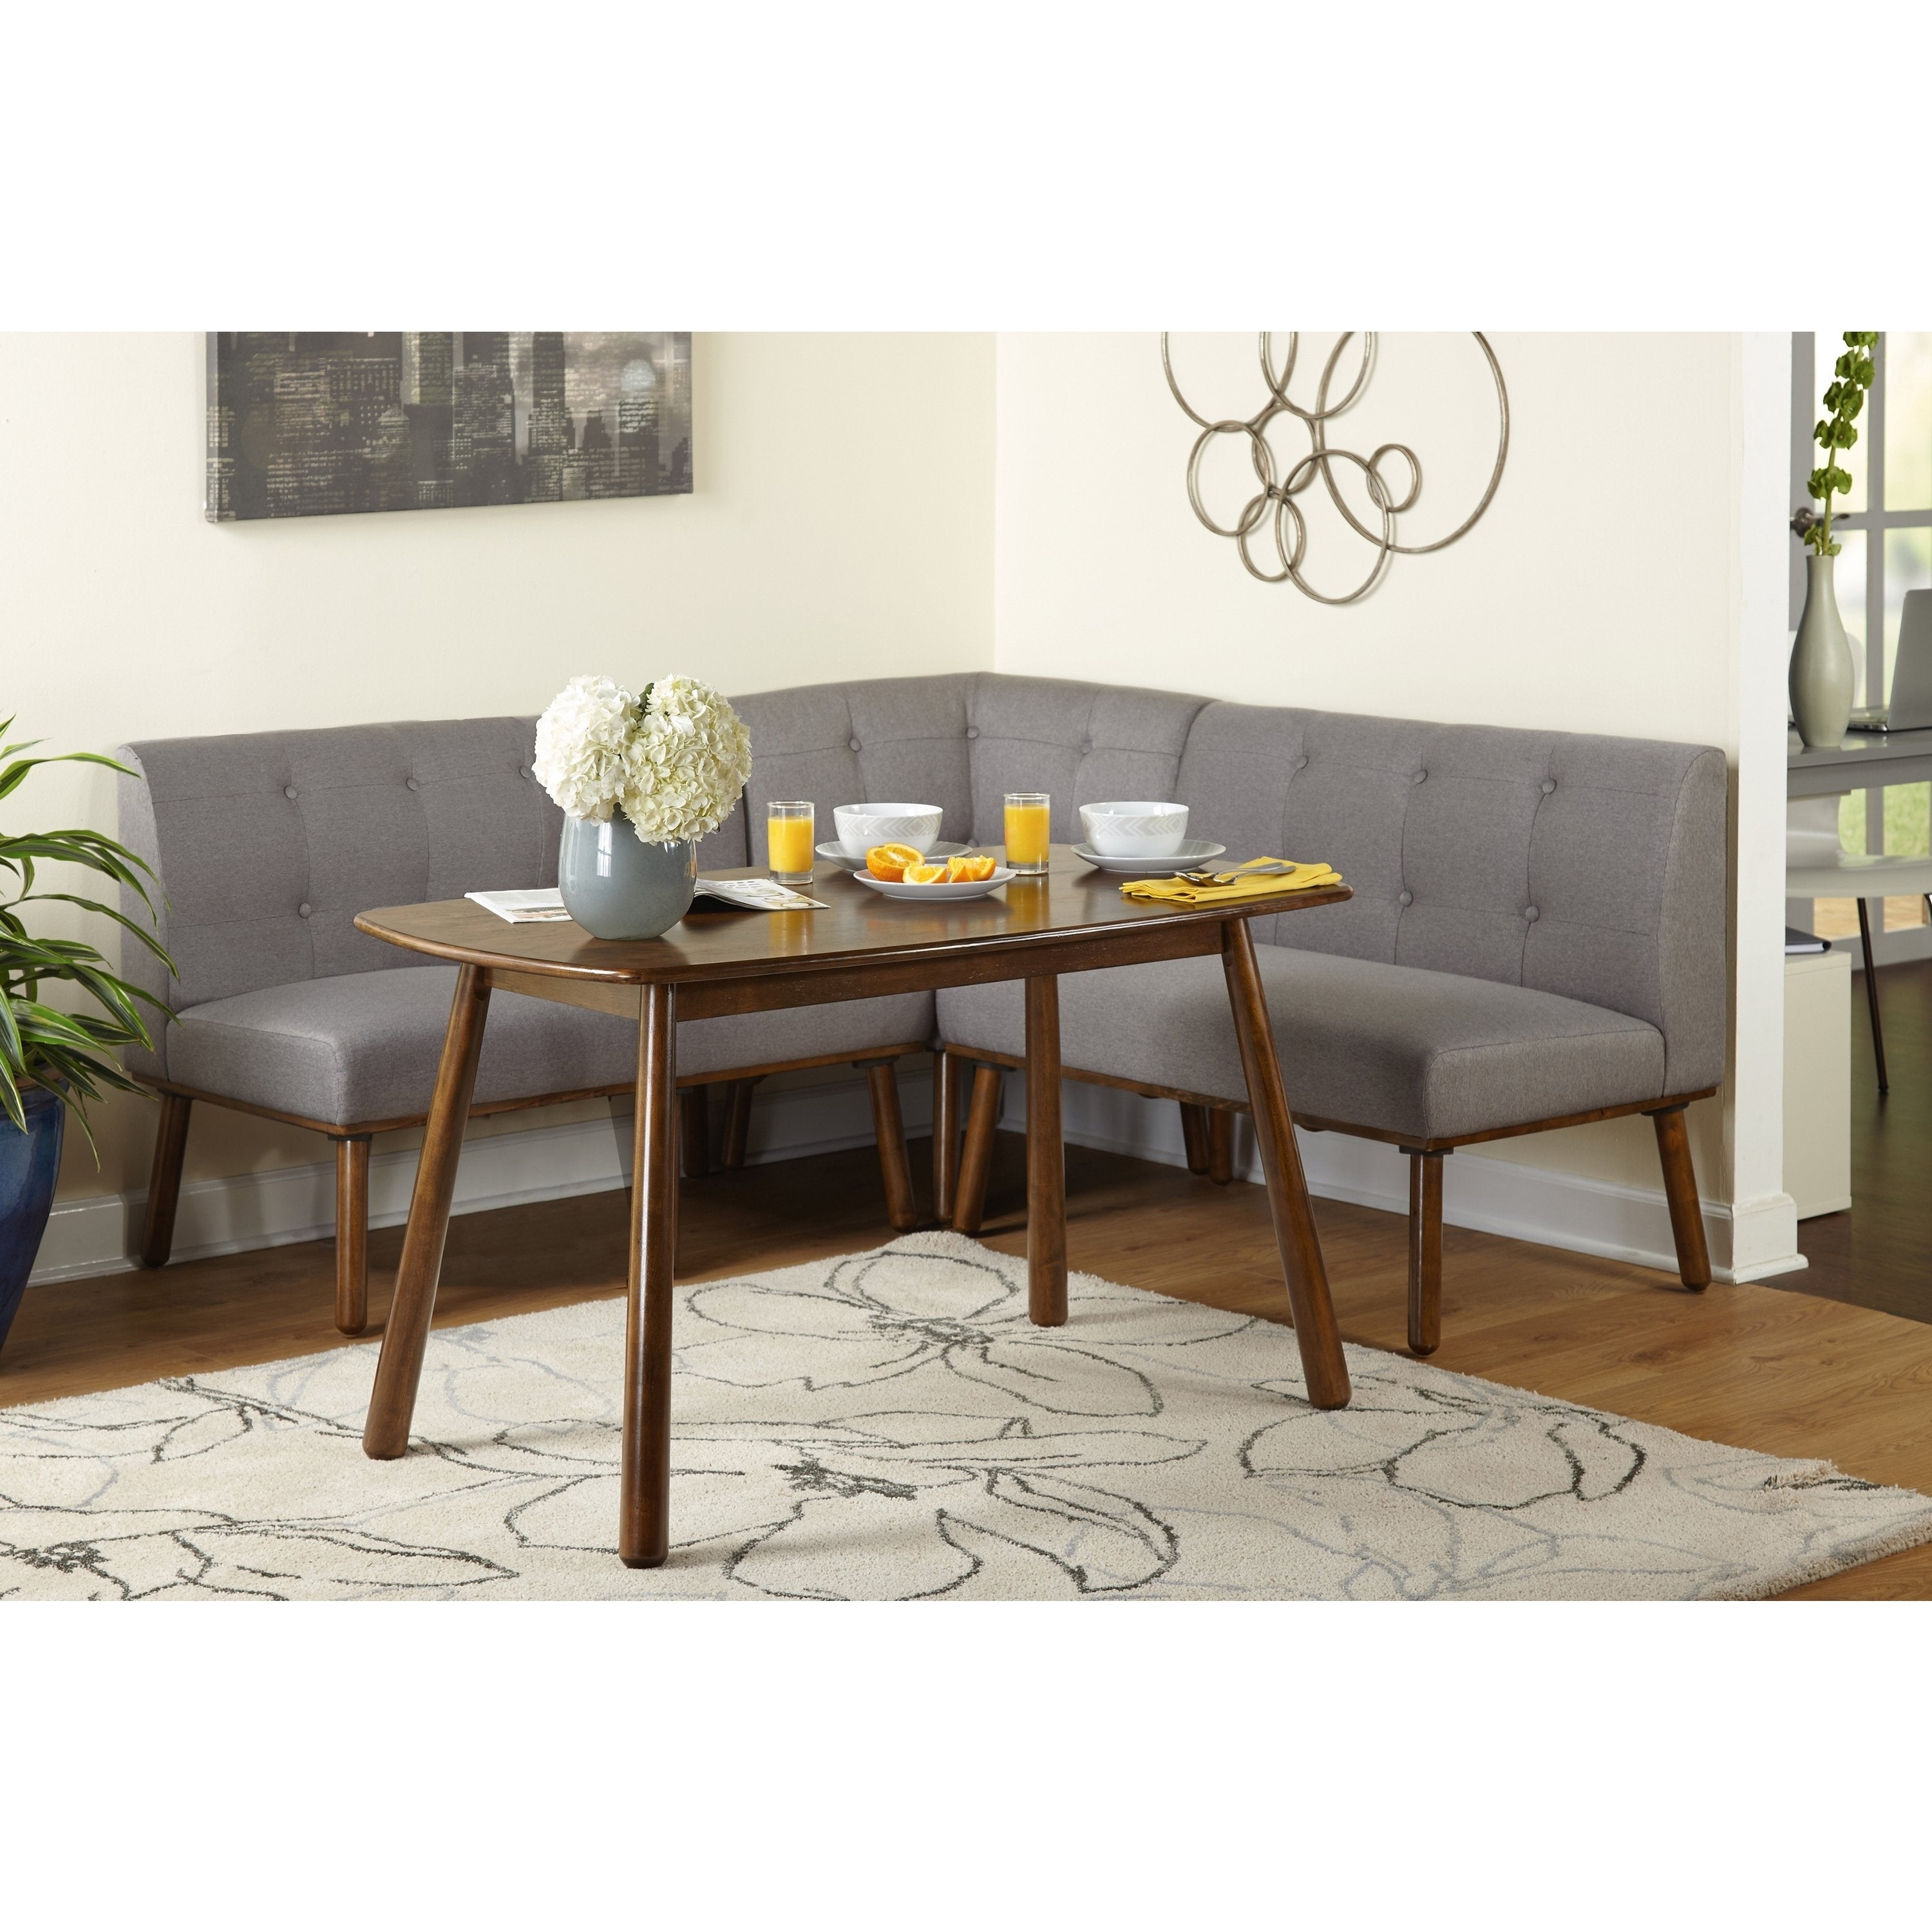 Current Bedfo 3 Piece Dining Sets Pertaining To Buy 3 Piece Sets Kitchen & Dining Room Sets Online At Overstock (View 19 of 25)